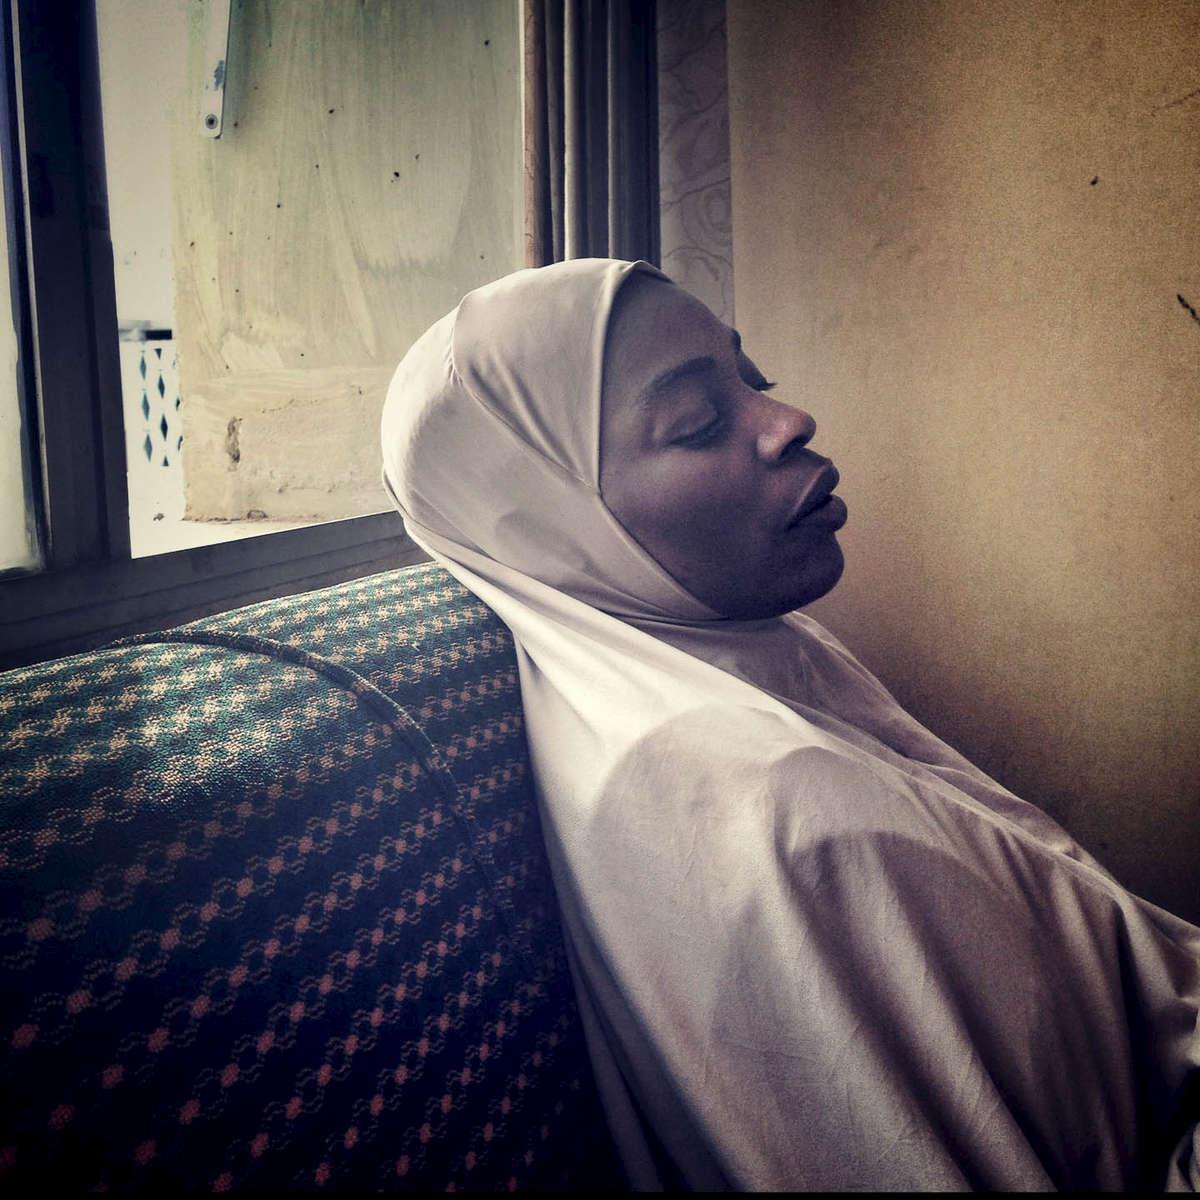 My friend Rabi. Waiting at the Ministry of Justice in Kano, Northern Nigeria. March 2014.